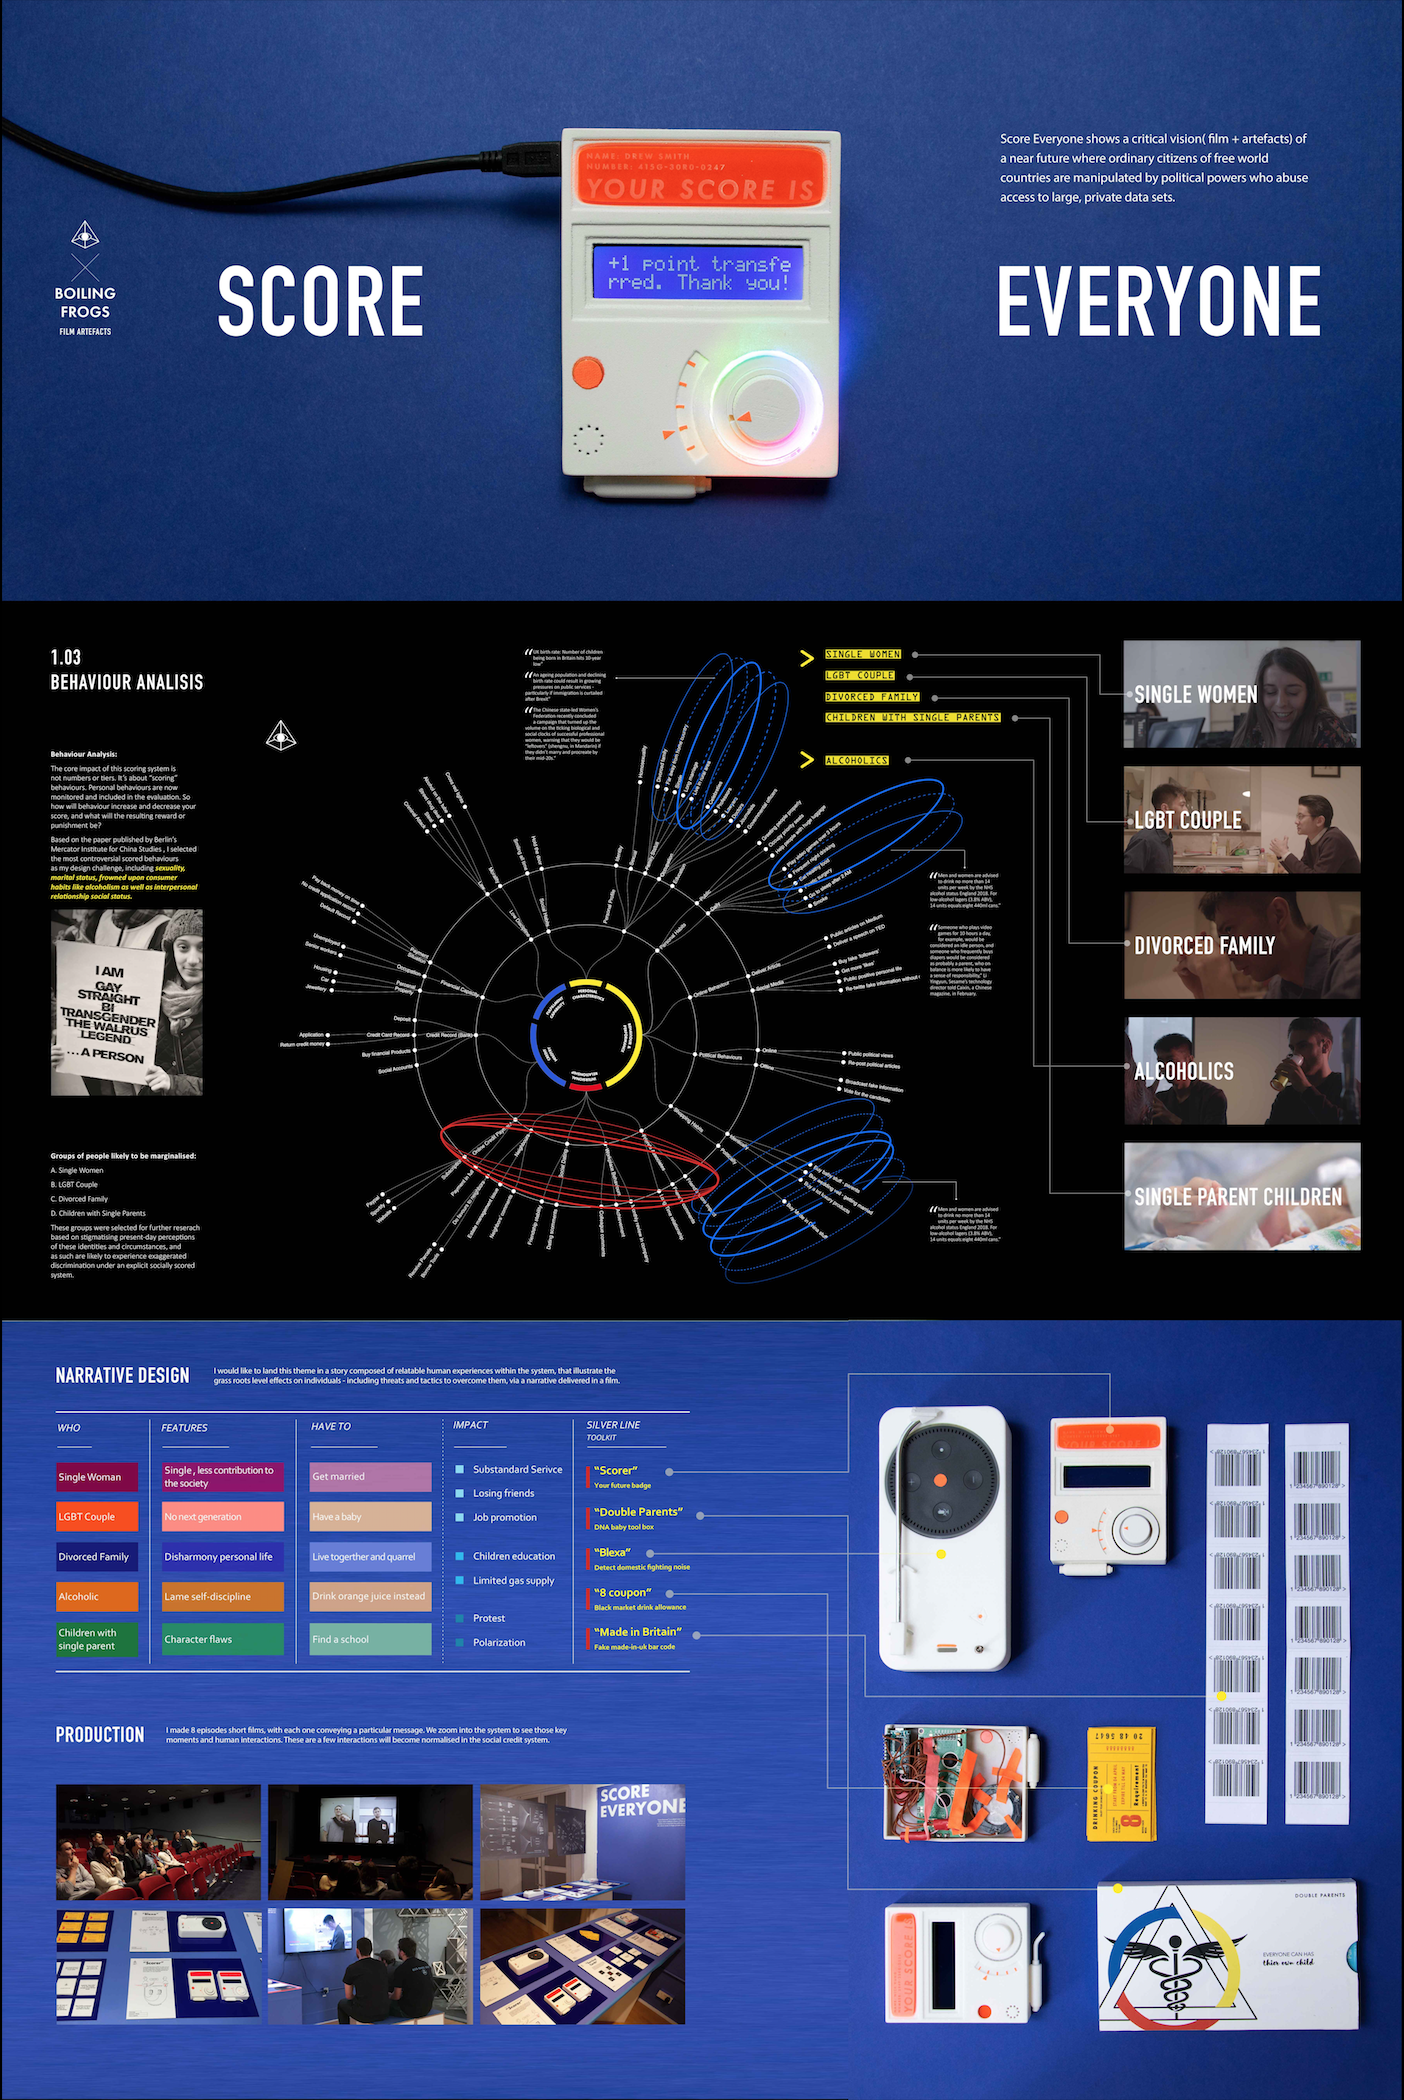 """""""Score Everyone"""" is a critical vision of a future where ordinary citizens of free world countries are manipulated by political powers who abuse access to large, private data sets. It began with two real cases of Cambridge Analytica scandal and Chinese Social Credit System, proposed a speculative future that free world countries are entering the post-privacy age, people's behaviour and lifestyle are shaped based on personal data analyses, the transaction of """"personal self"""" and """"data self"""". It lands the theme in a story composed of relatable human experiences within the system, which illustrate the grassroots level effects on individuals."""